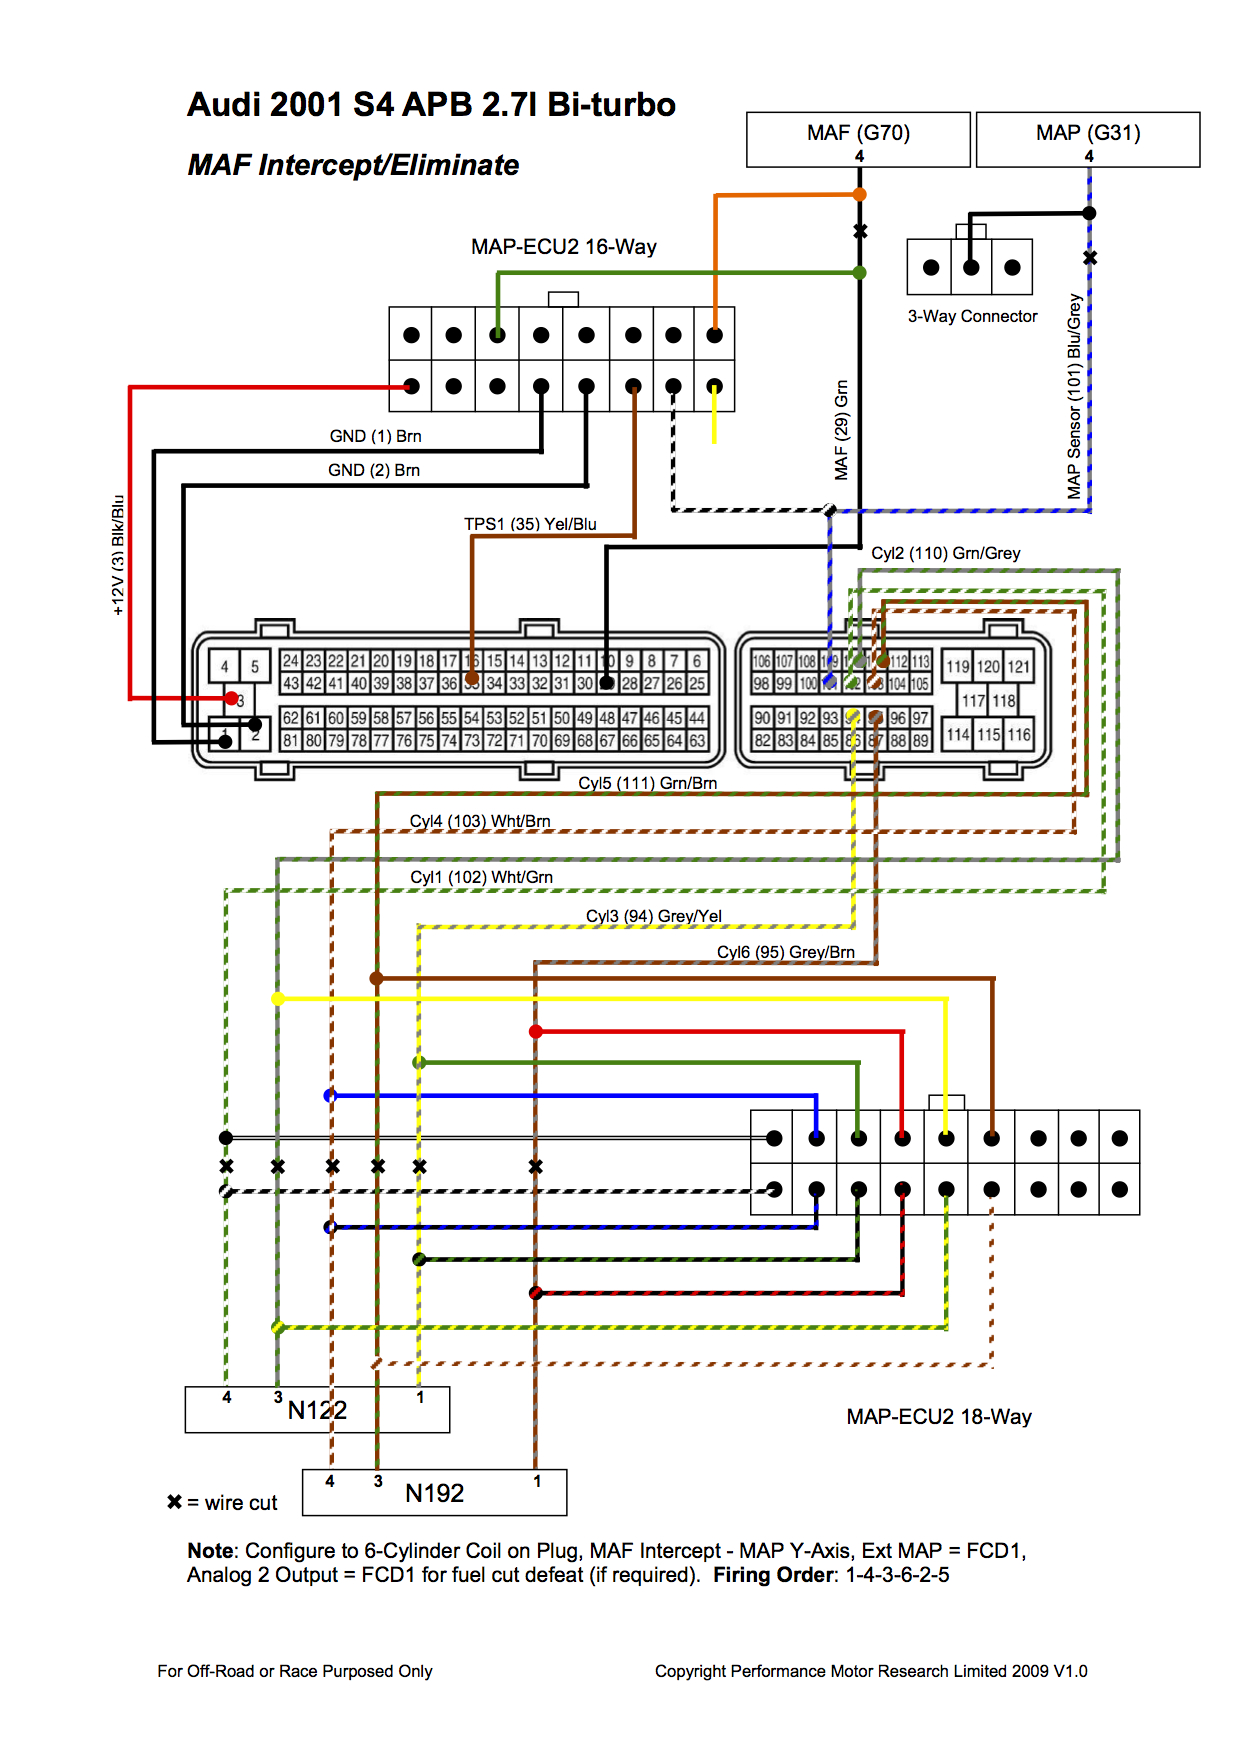 Audi S4 20011 ecu wiring diagram paccar ecu wiring diagram \u2022 wiring diagrams j  at nearapp.co